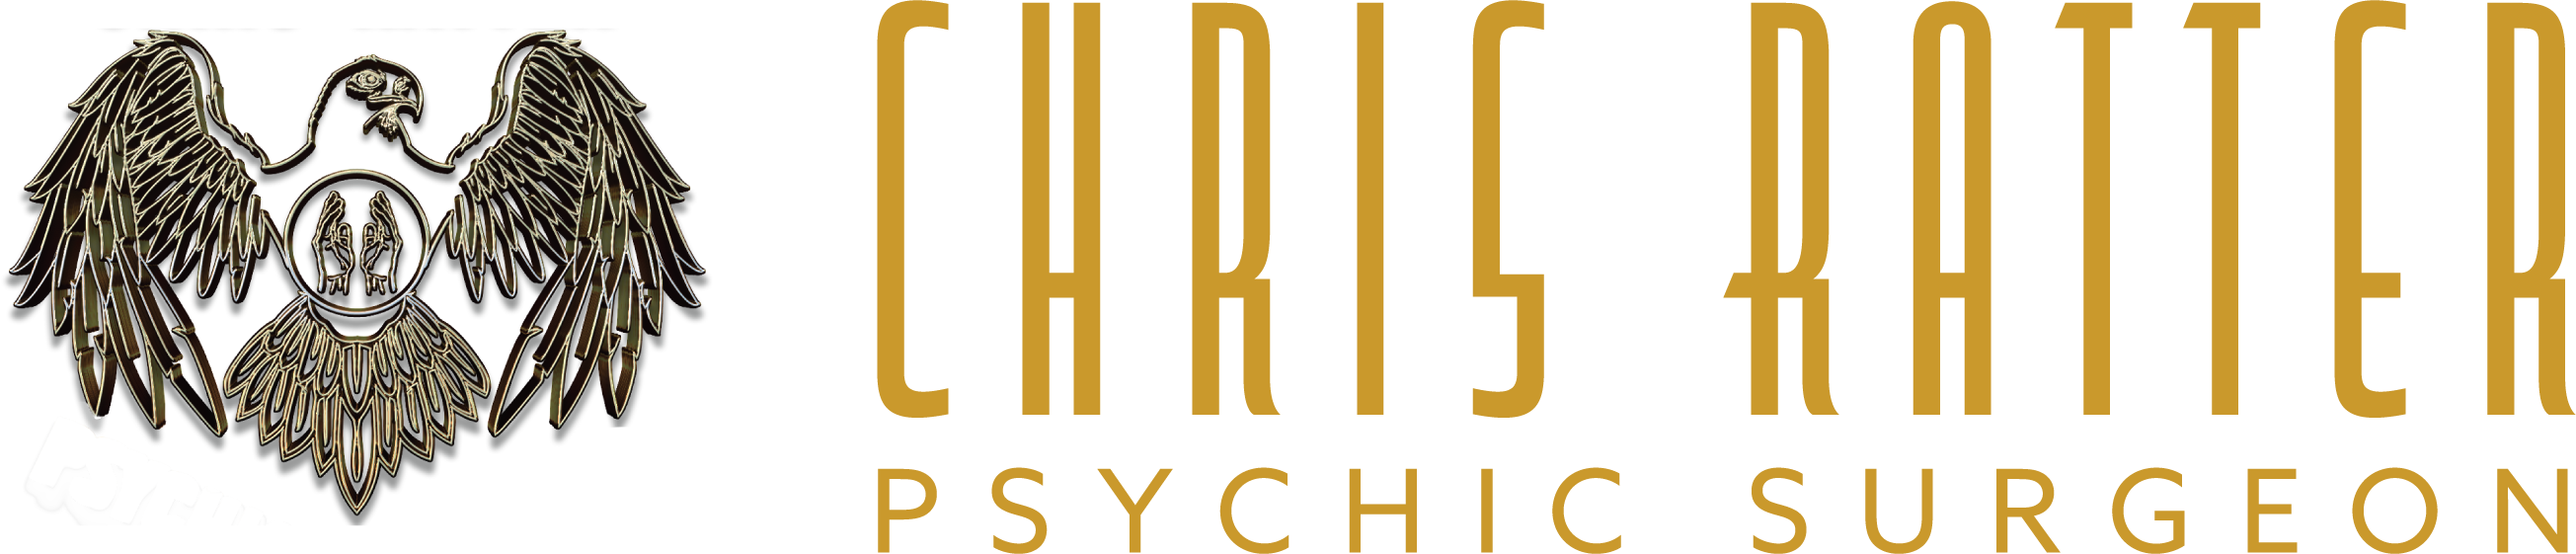 Chris Ratter Psychic Surgeon